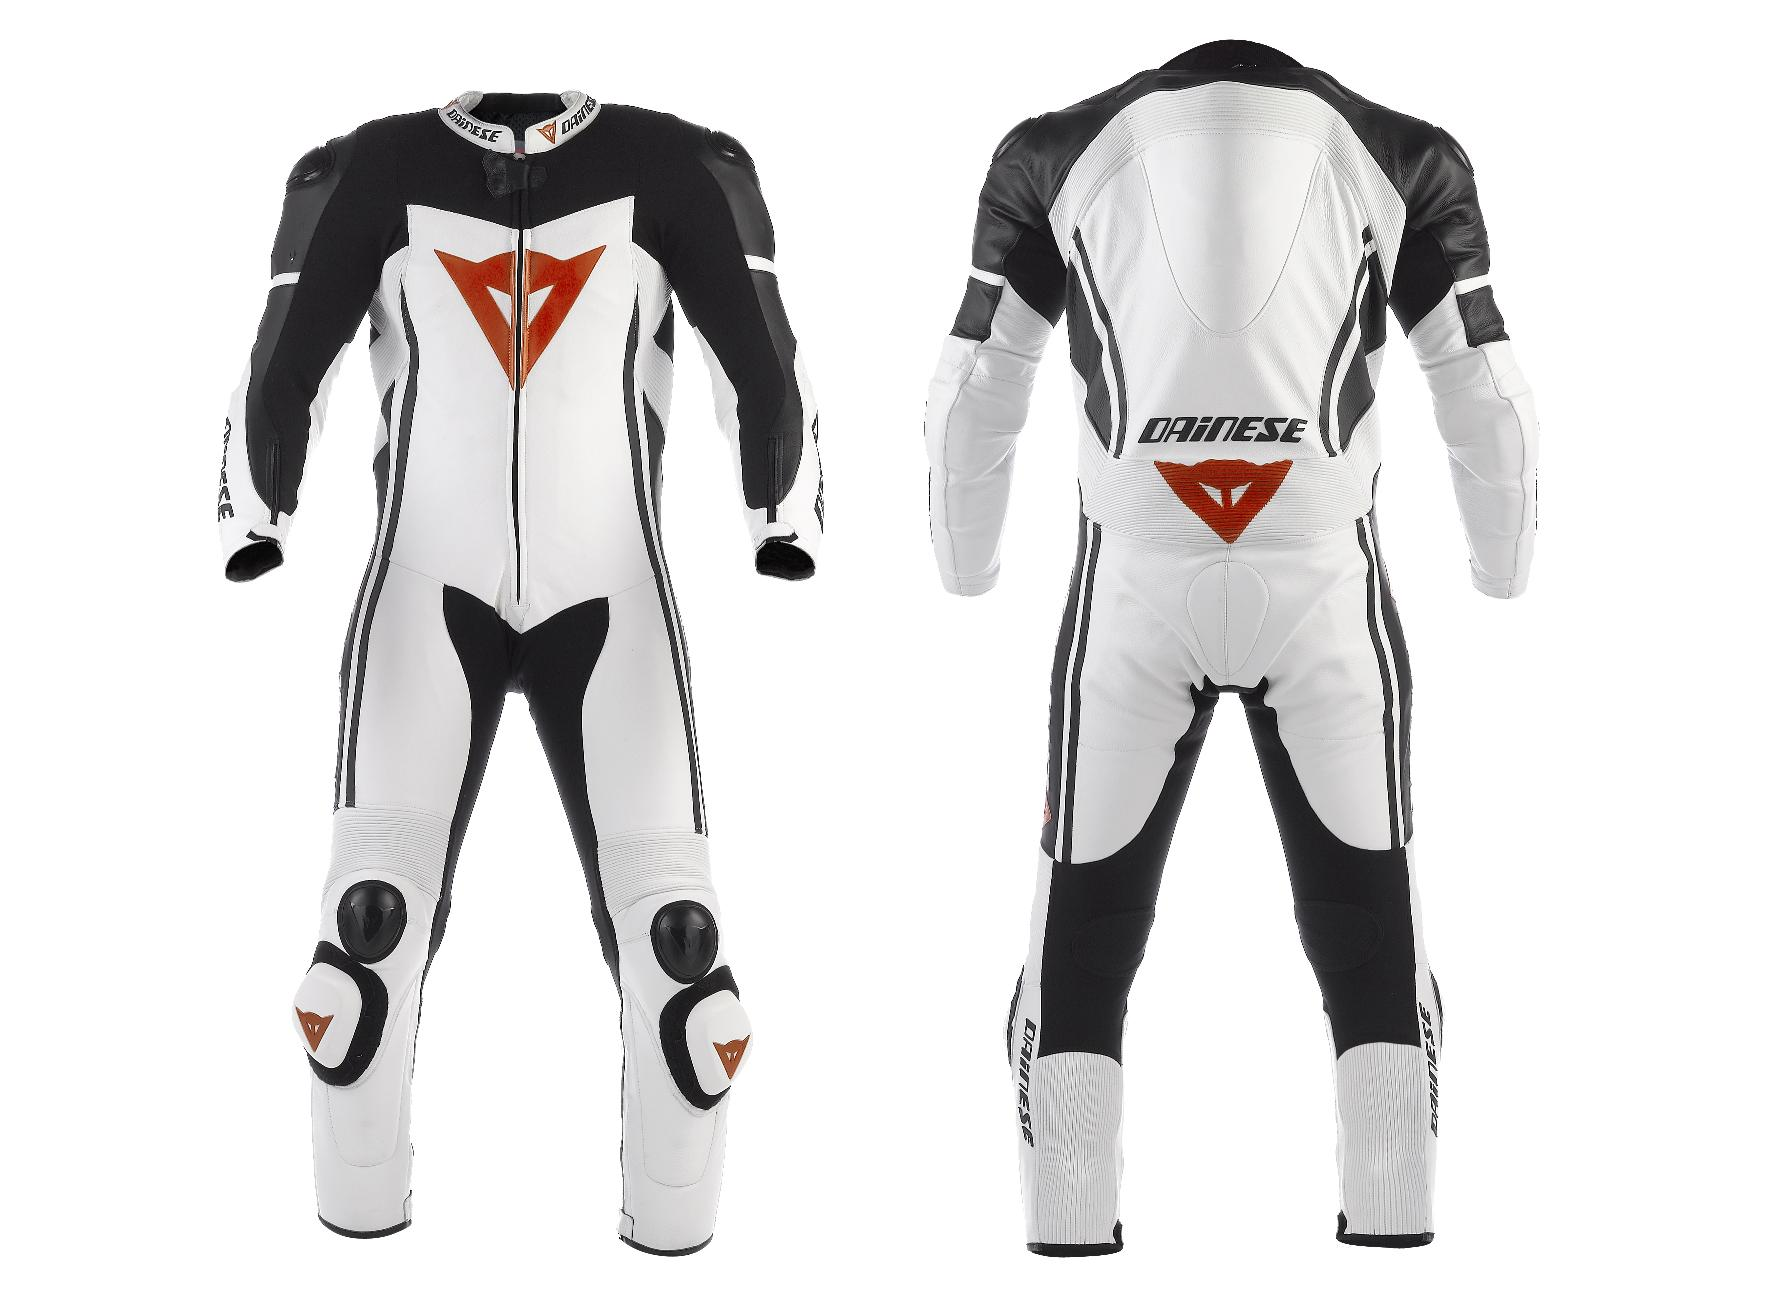 new dainese d air racing airbag suit gets you a vip weekend autoevolution. Black Bedroom Furniture Sets. Home Design Ideas